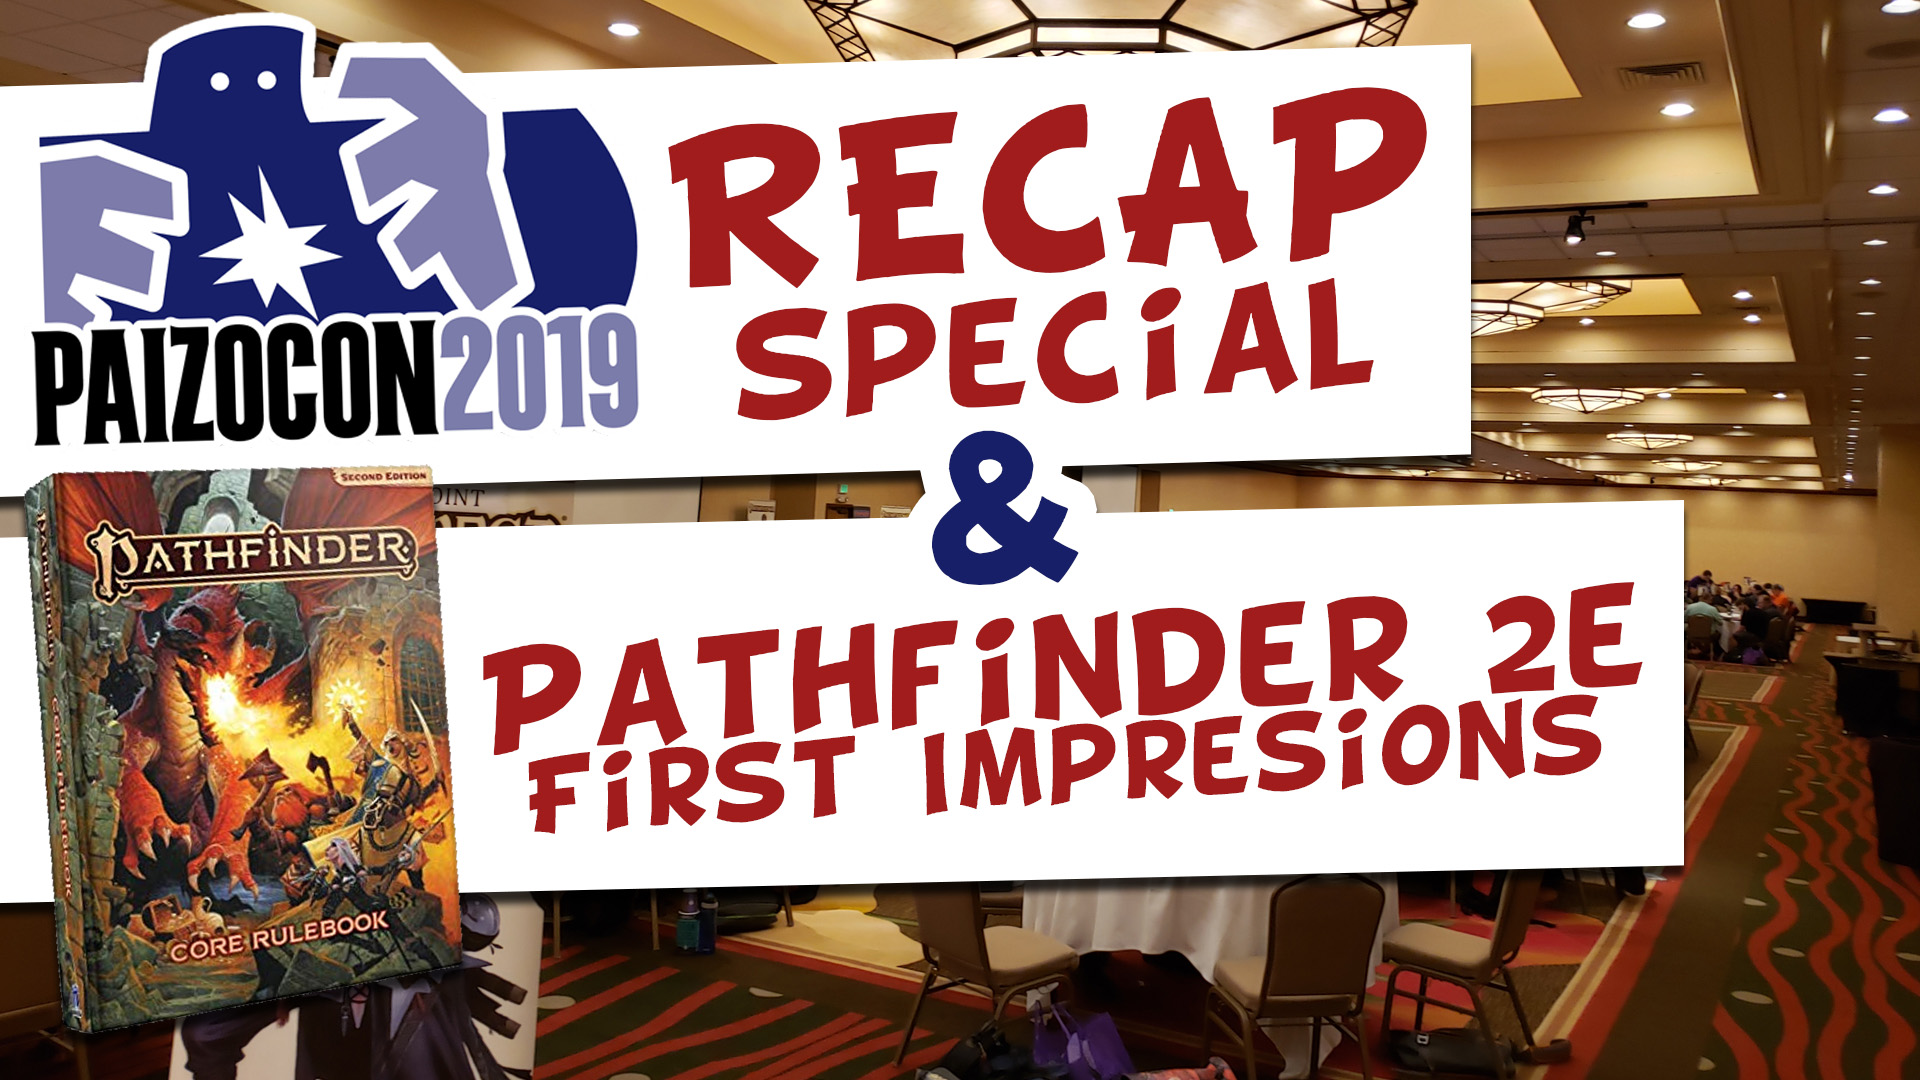 PaizoCon 2019 Recap Special and Pathfinder Second Edition First Impression